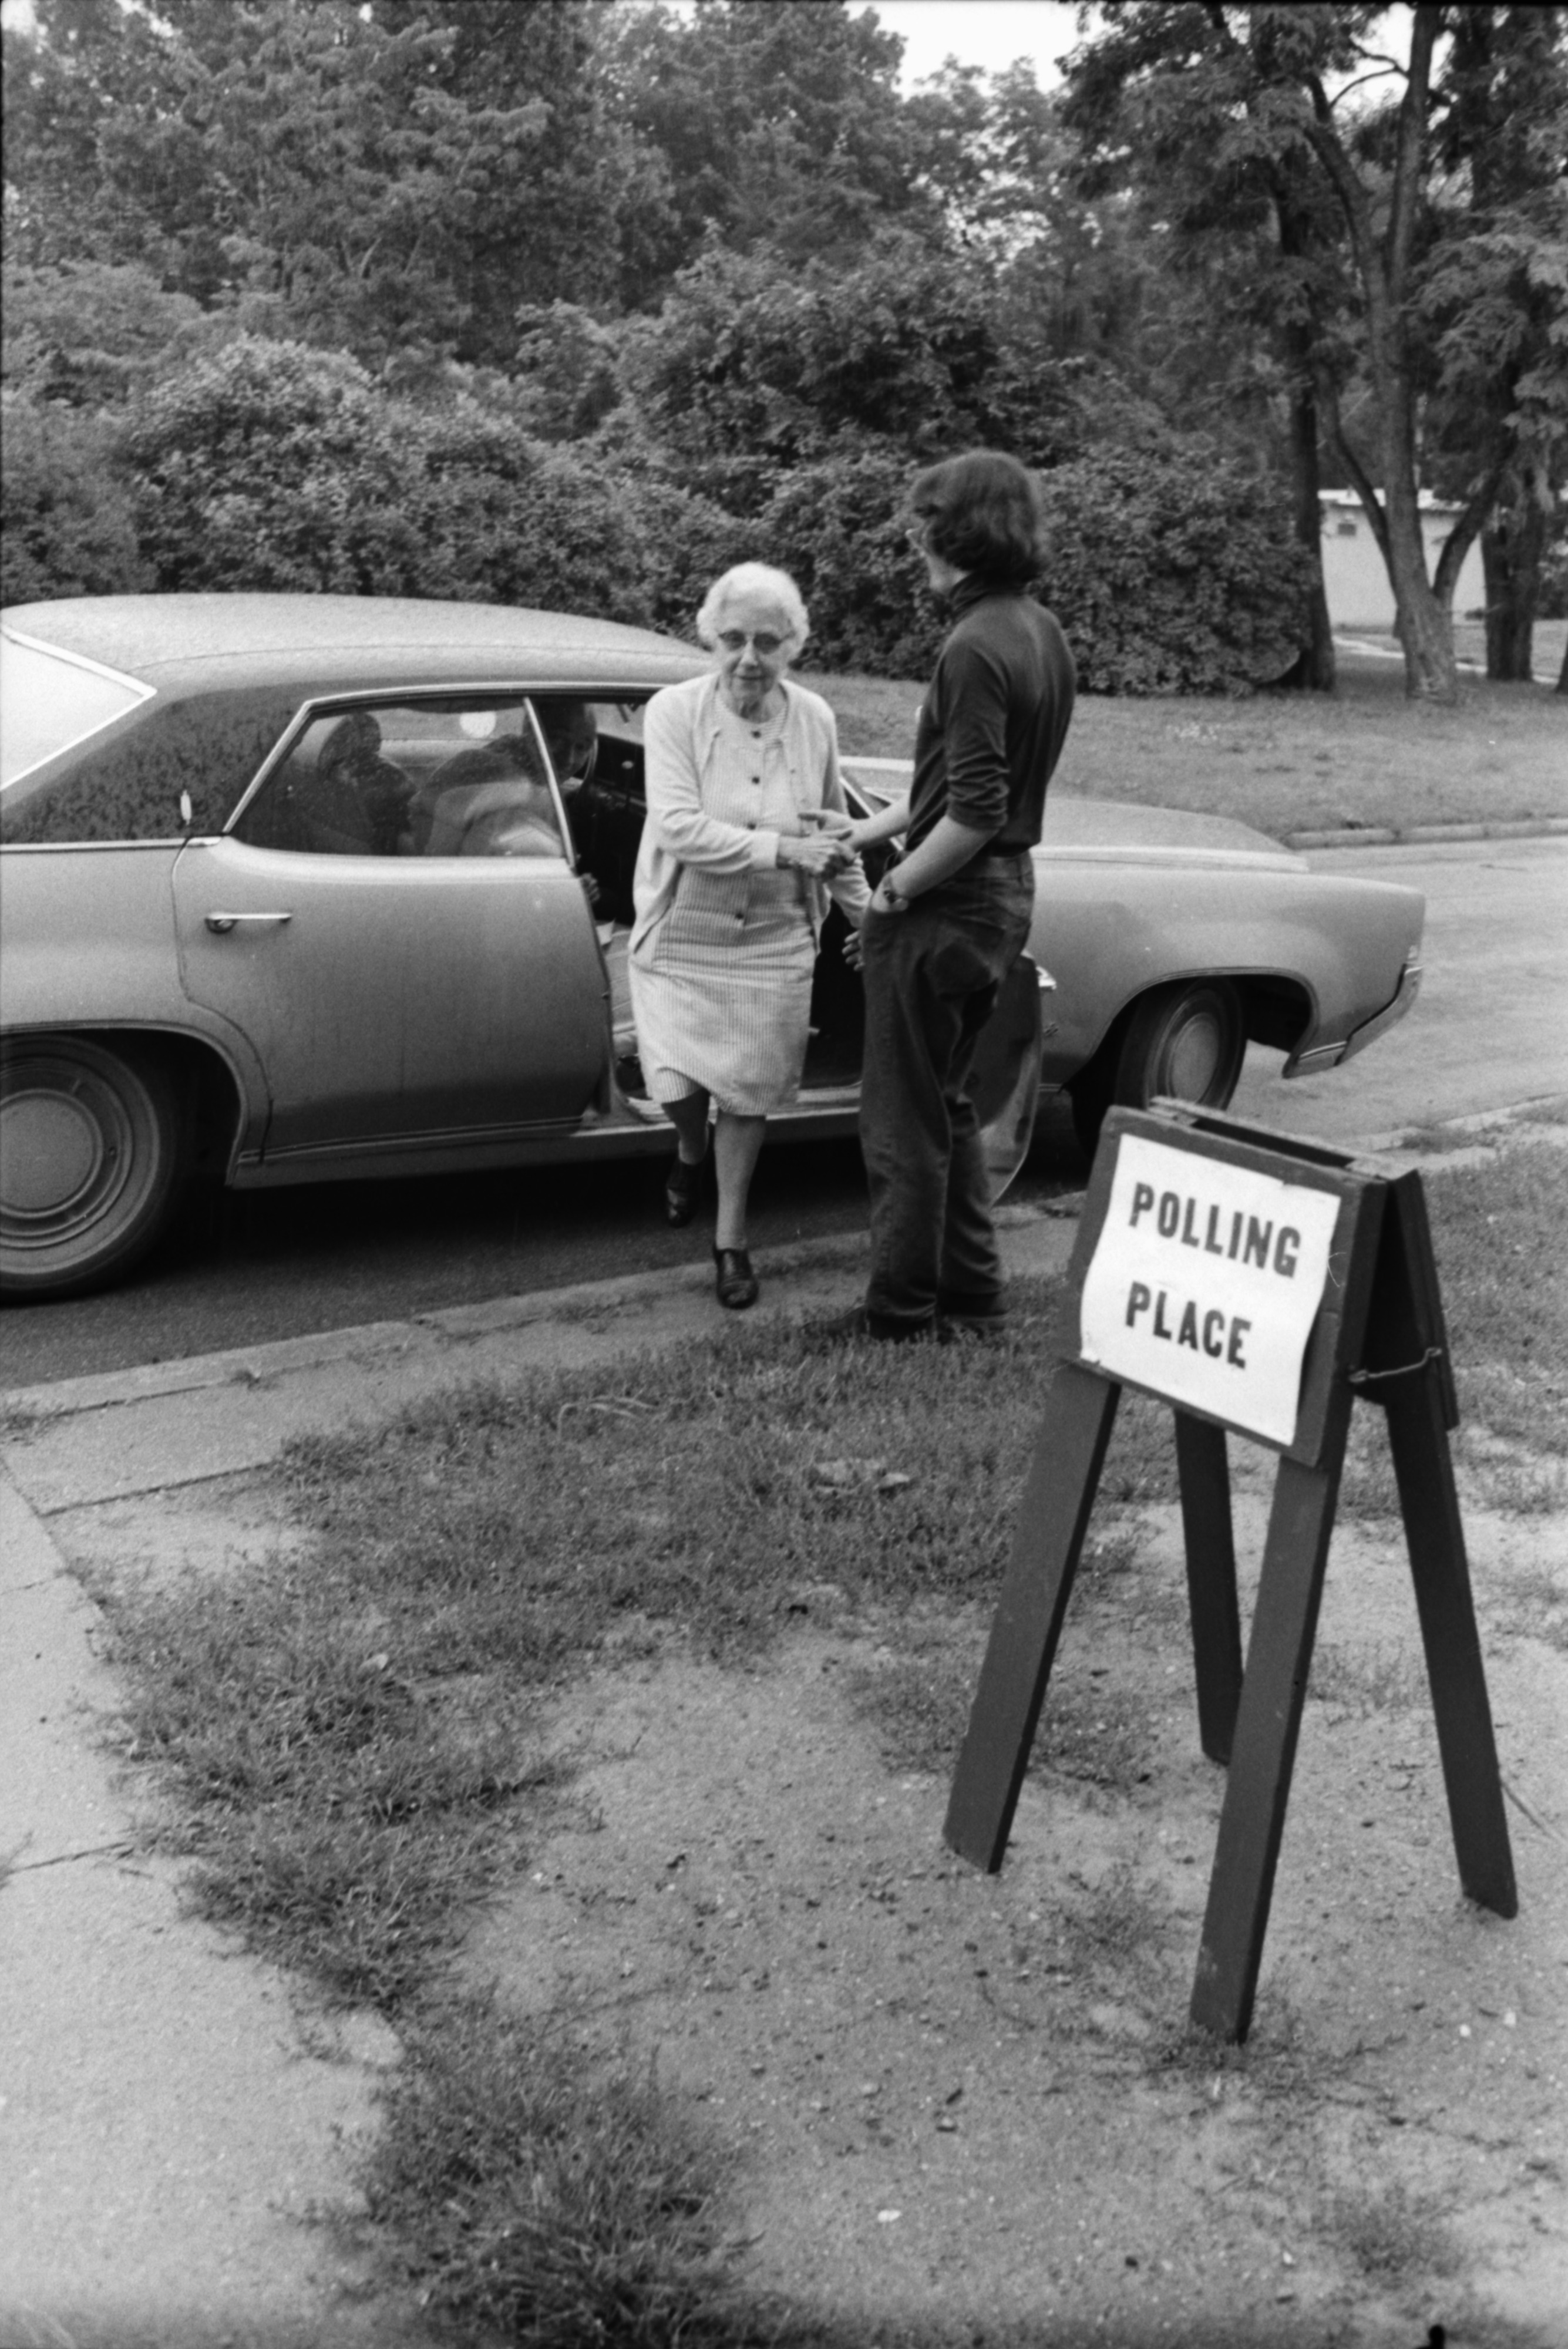 Mrs. Catherine Heinzmann On Way To Vote, Helped by Tom Daniels, August 1972 image